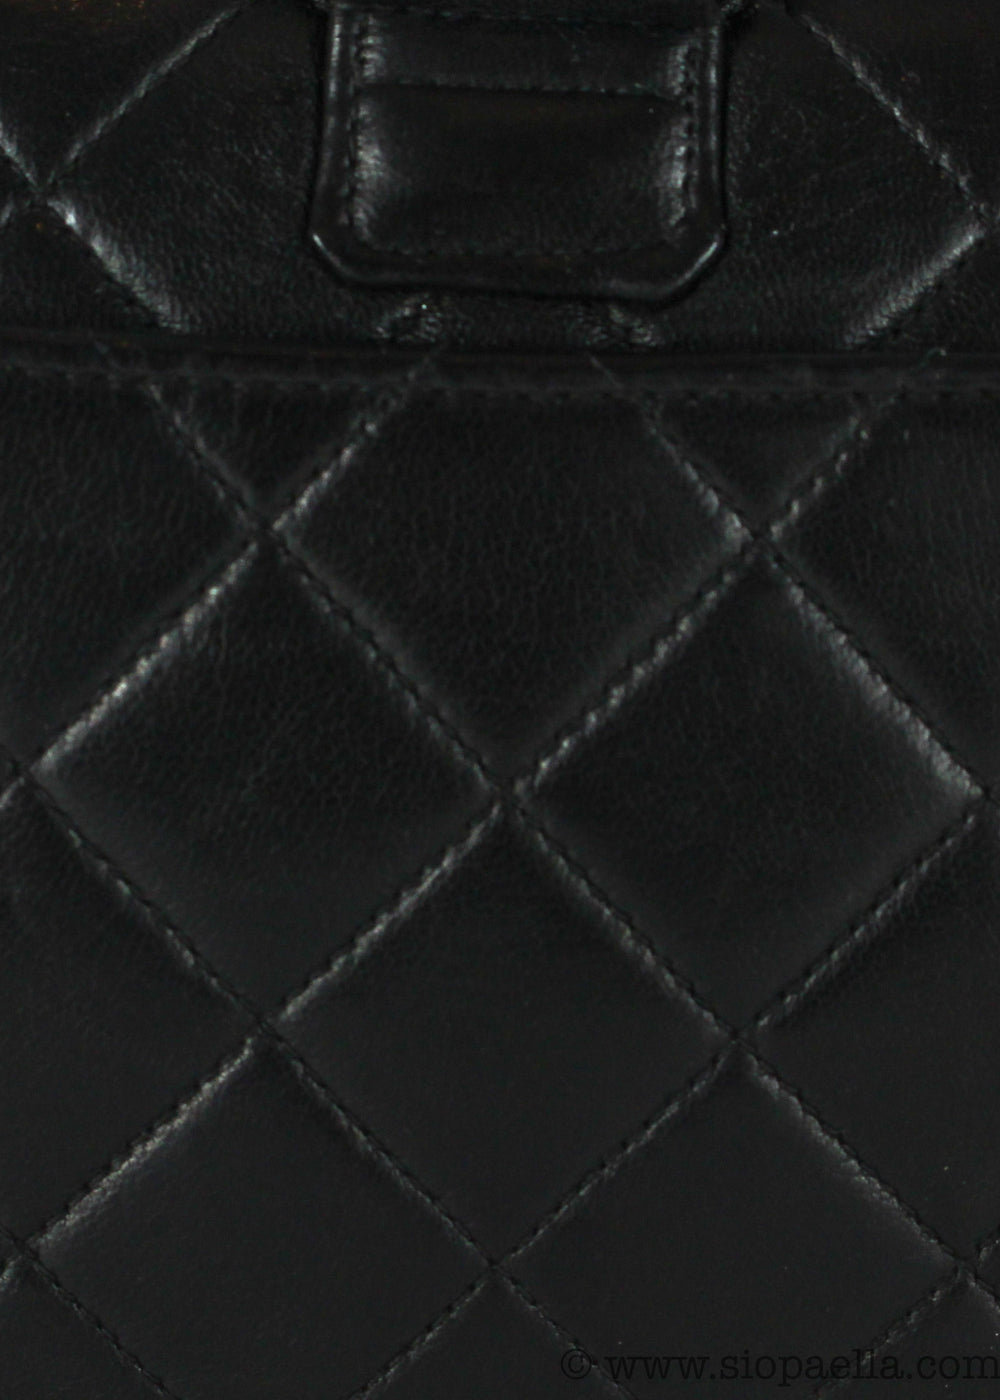 Chanel Lambskin Vintage Flap Backpack - Siopaella Designer Exchange